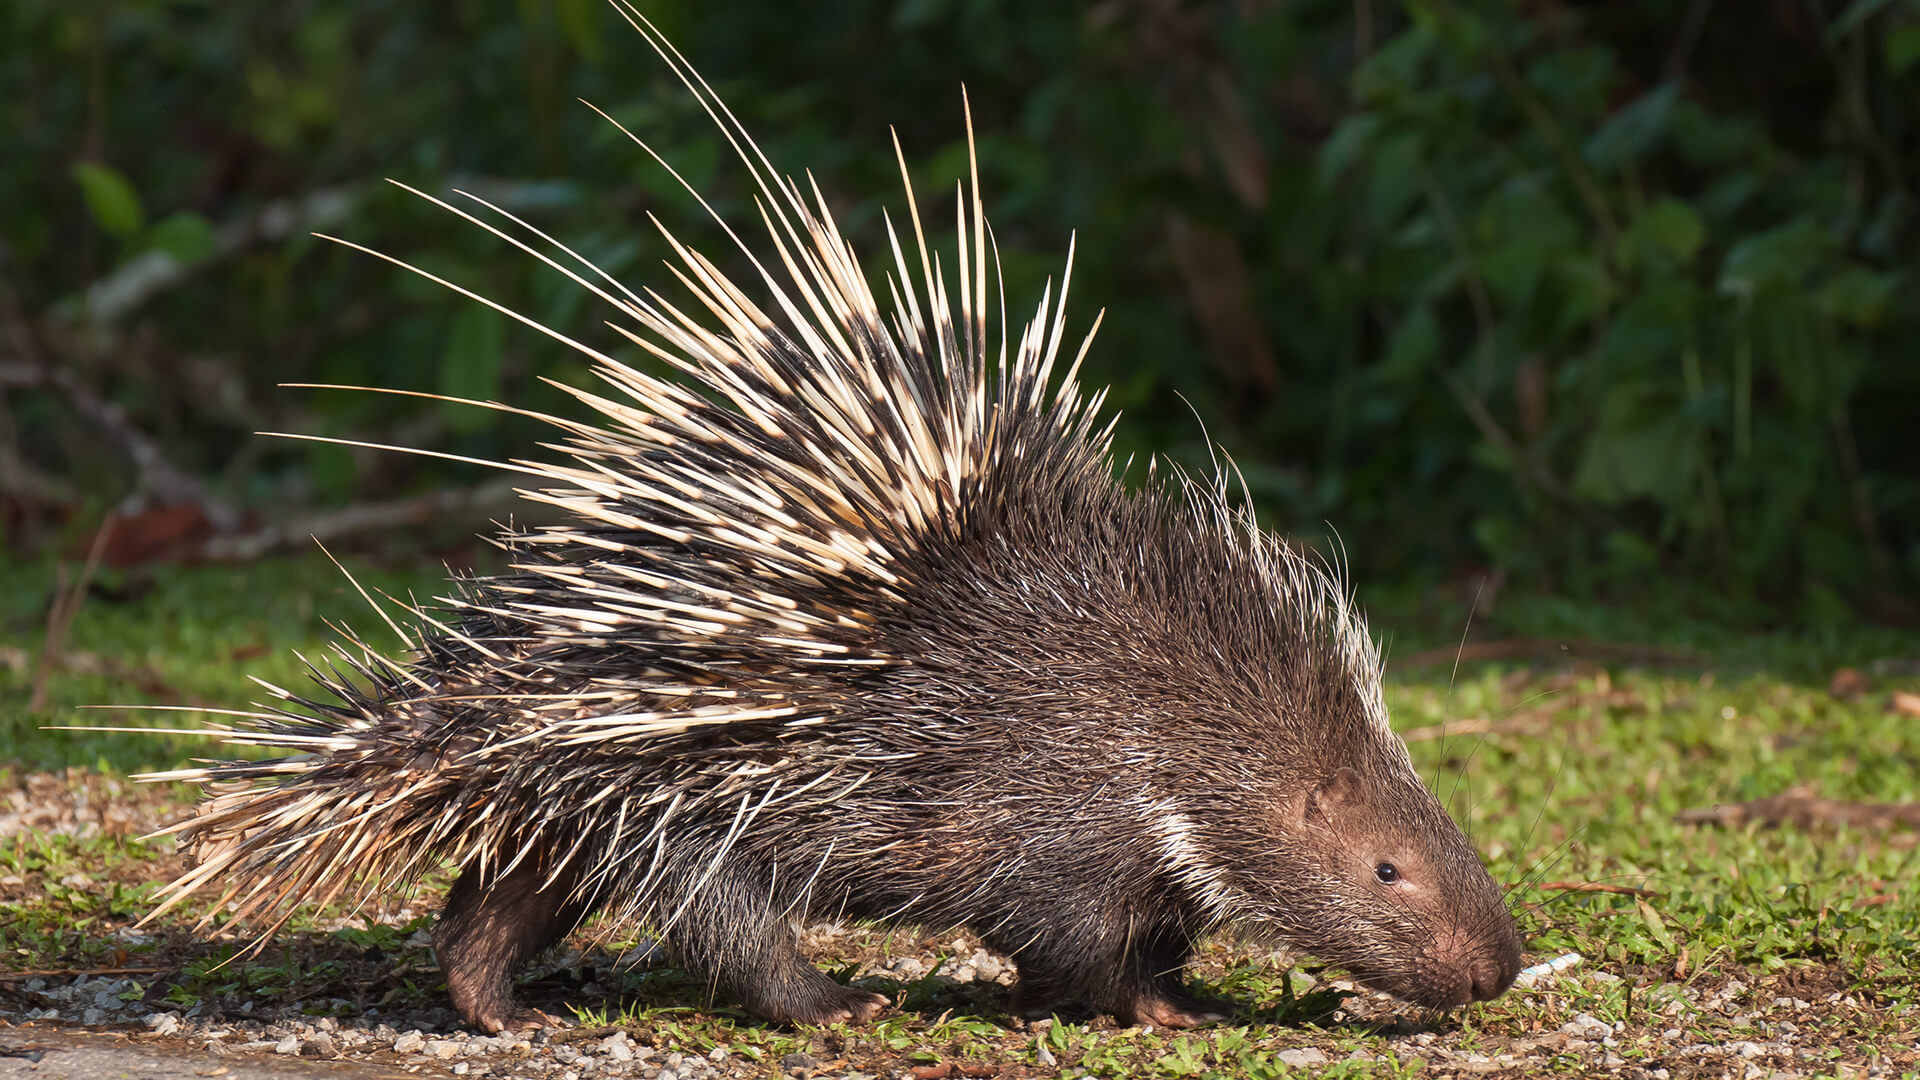 It turns out squeezing a porcupine wasn't a good idea.